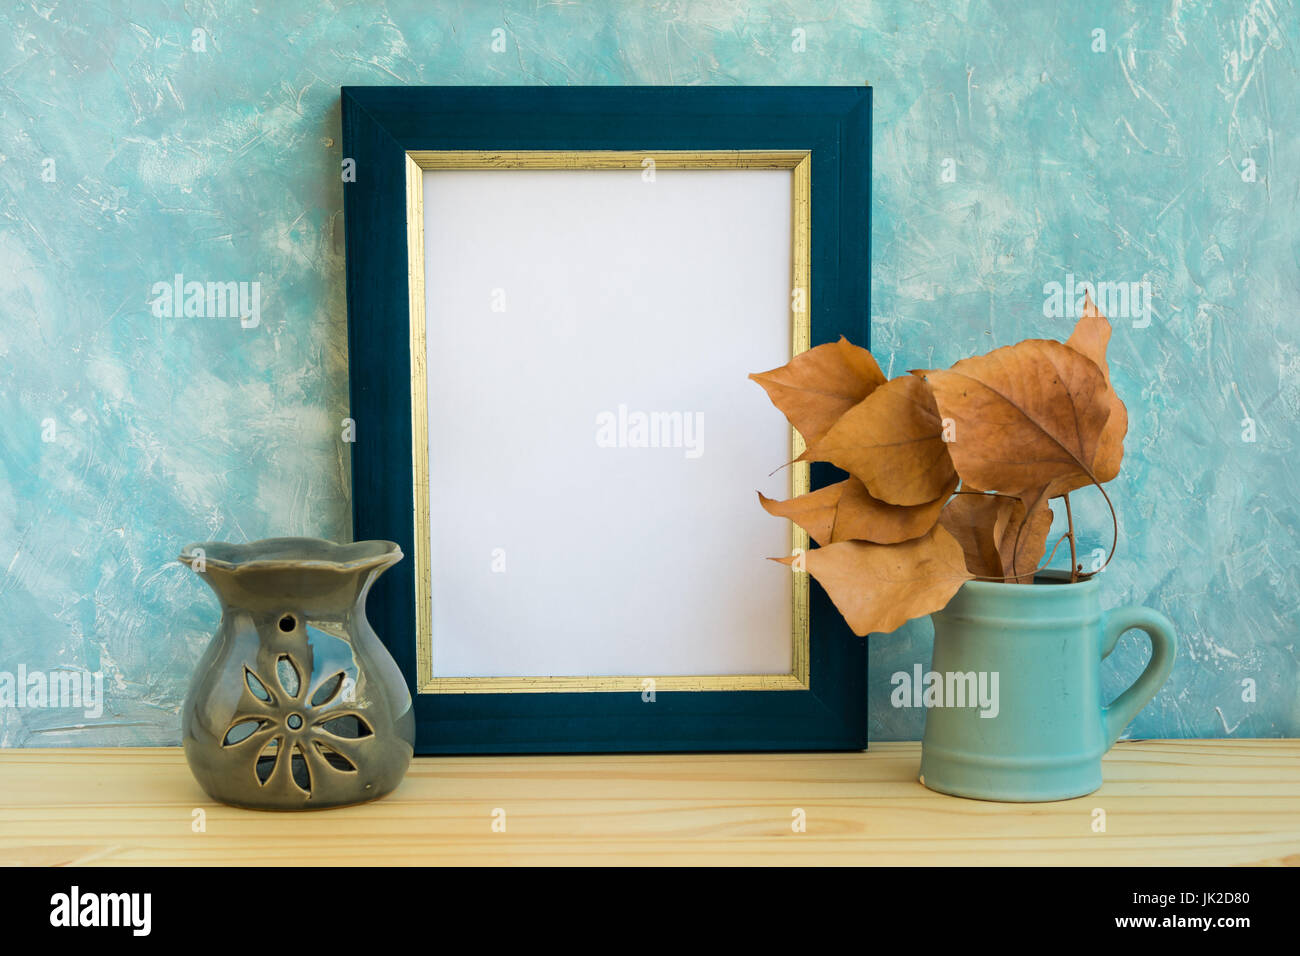 Blue and golden frame mockup, concrete wall background, wood table, fry leaves, aroma therapy lamp, autumn, fall, - Stock Image